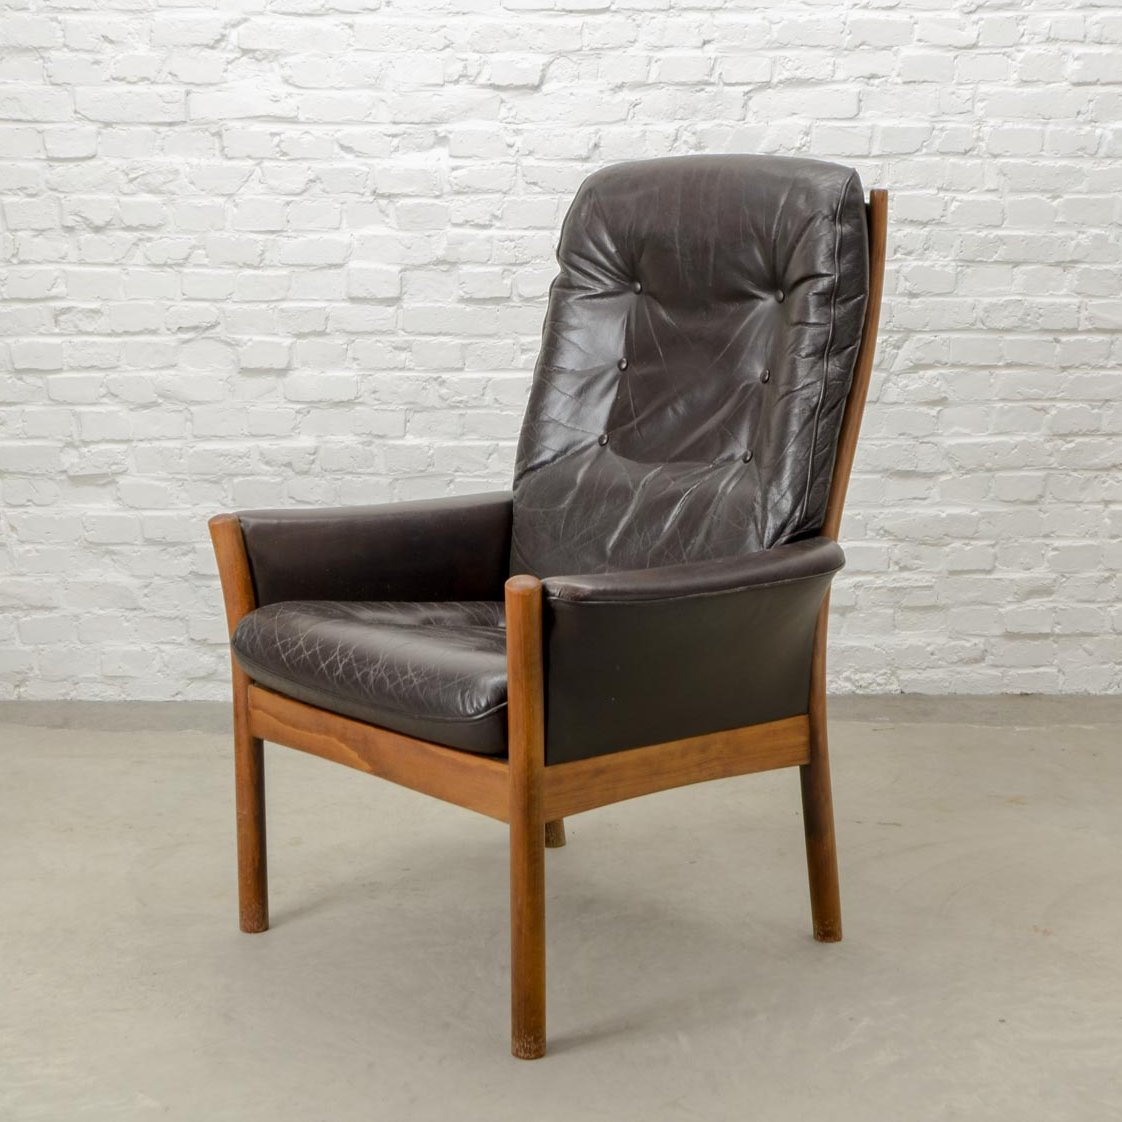 Scandinavian Möbel Scandinavian Design Brown Leather Lounge Chair By G Möbel Sweden 1960s